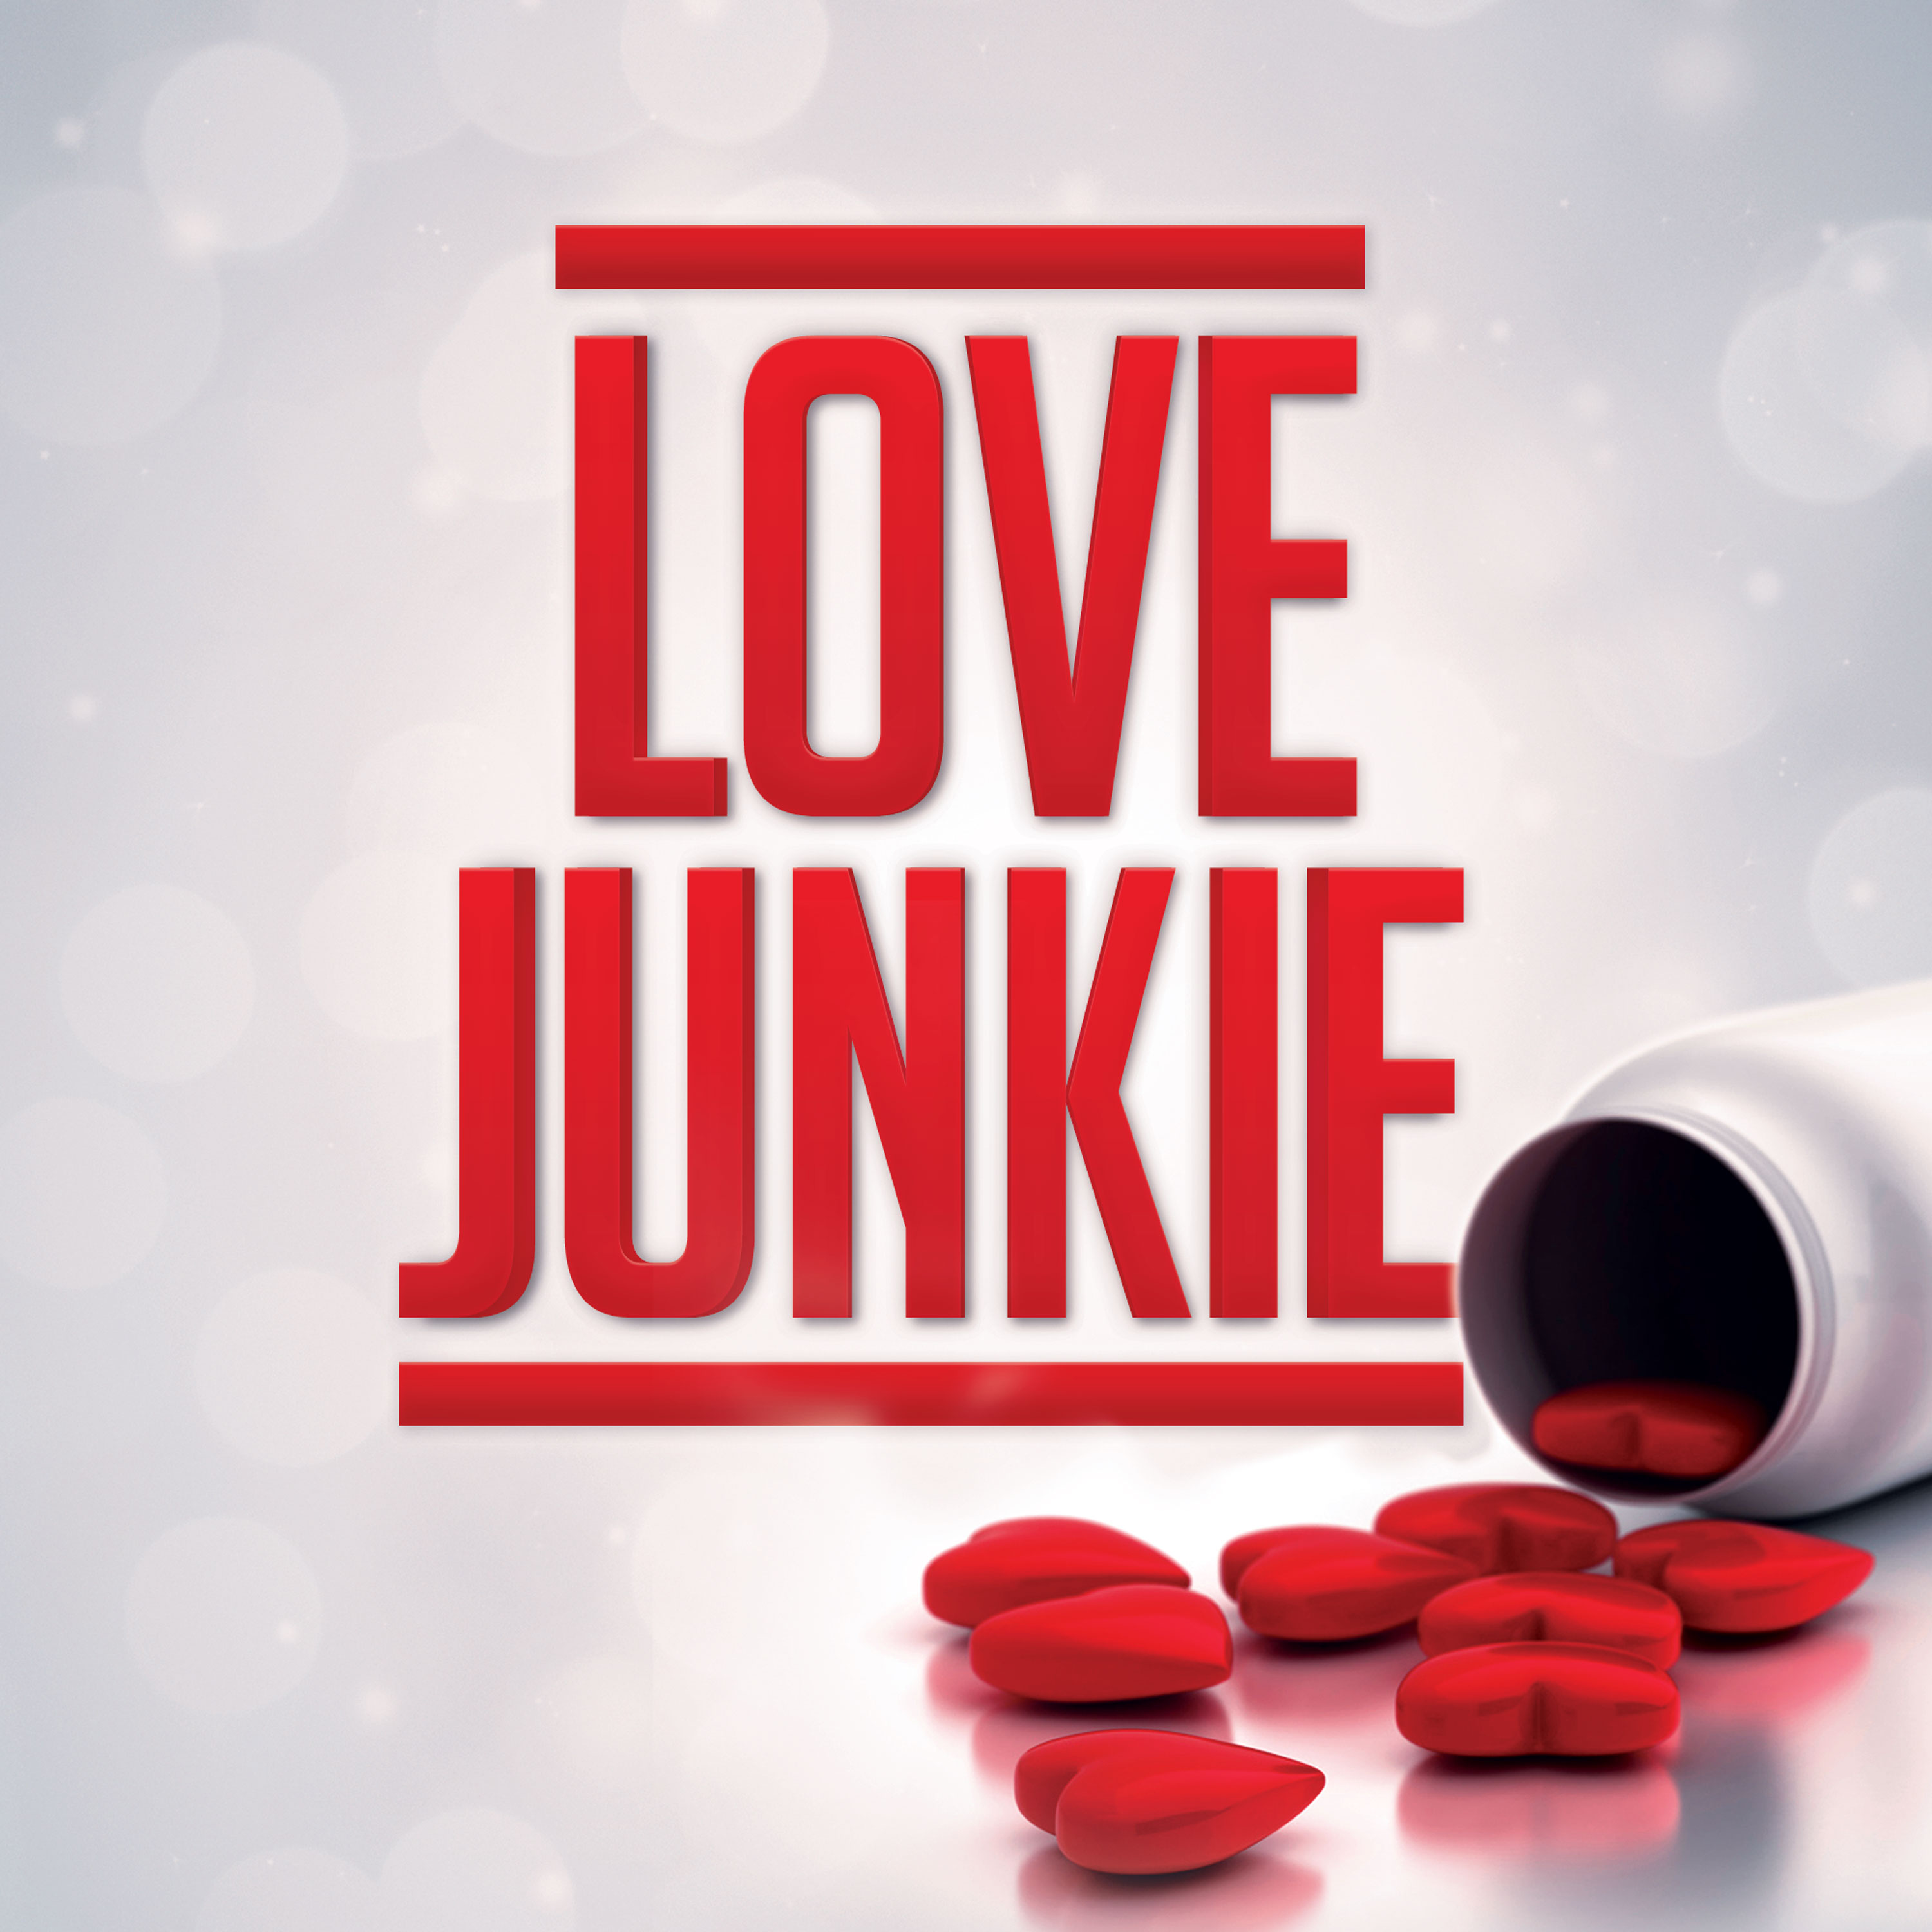 Love Junkie: Help for the Relationship Obsessed, Love Addicted, & Codependent - Episode #44: Come As You Are [With Healthy Sexuality] f/ Emily Nagoski